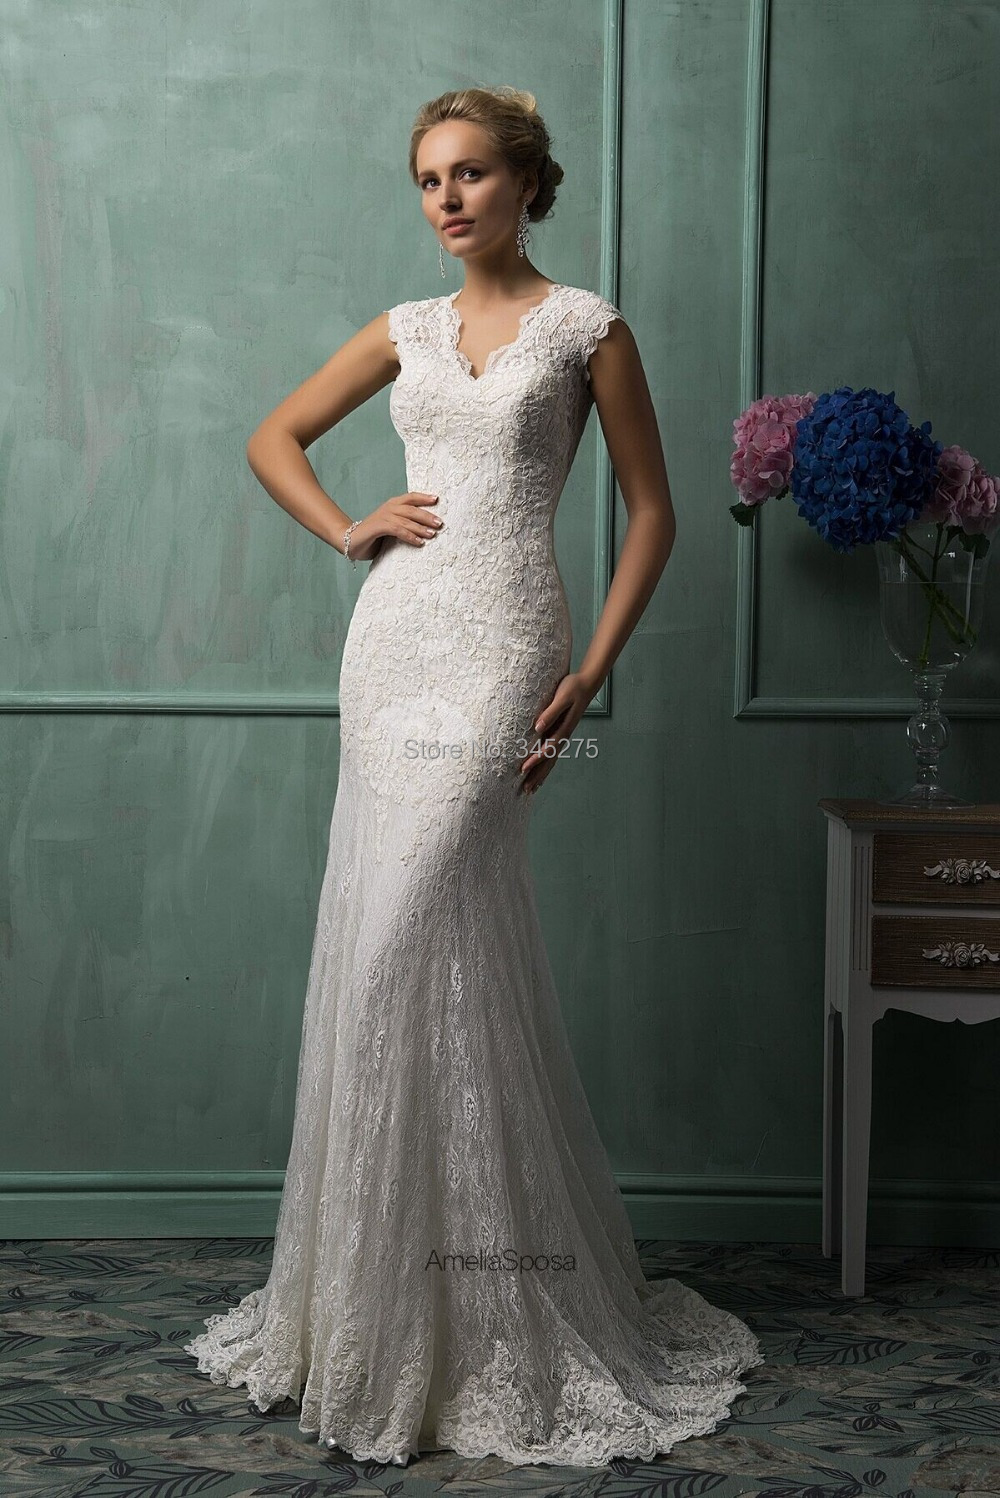 Vintage Designer Italy Cap Sleeves V Neck Court Train Buttons Open Back Lace Wedding Dresses Mermaid Style 2014 Vestido De Noiva In From